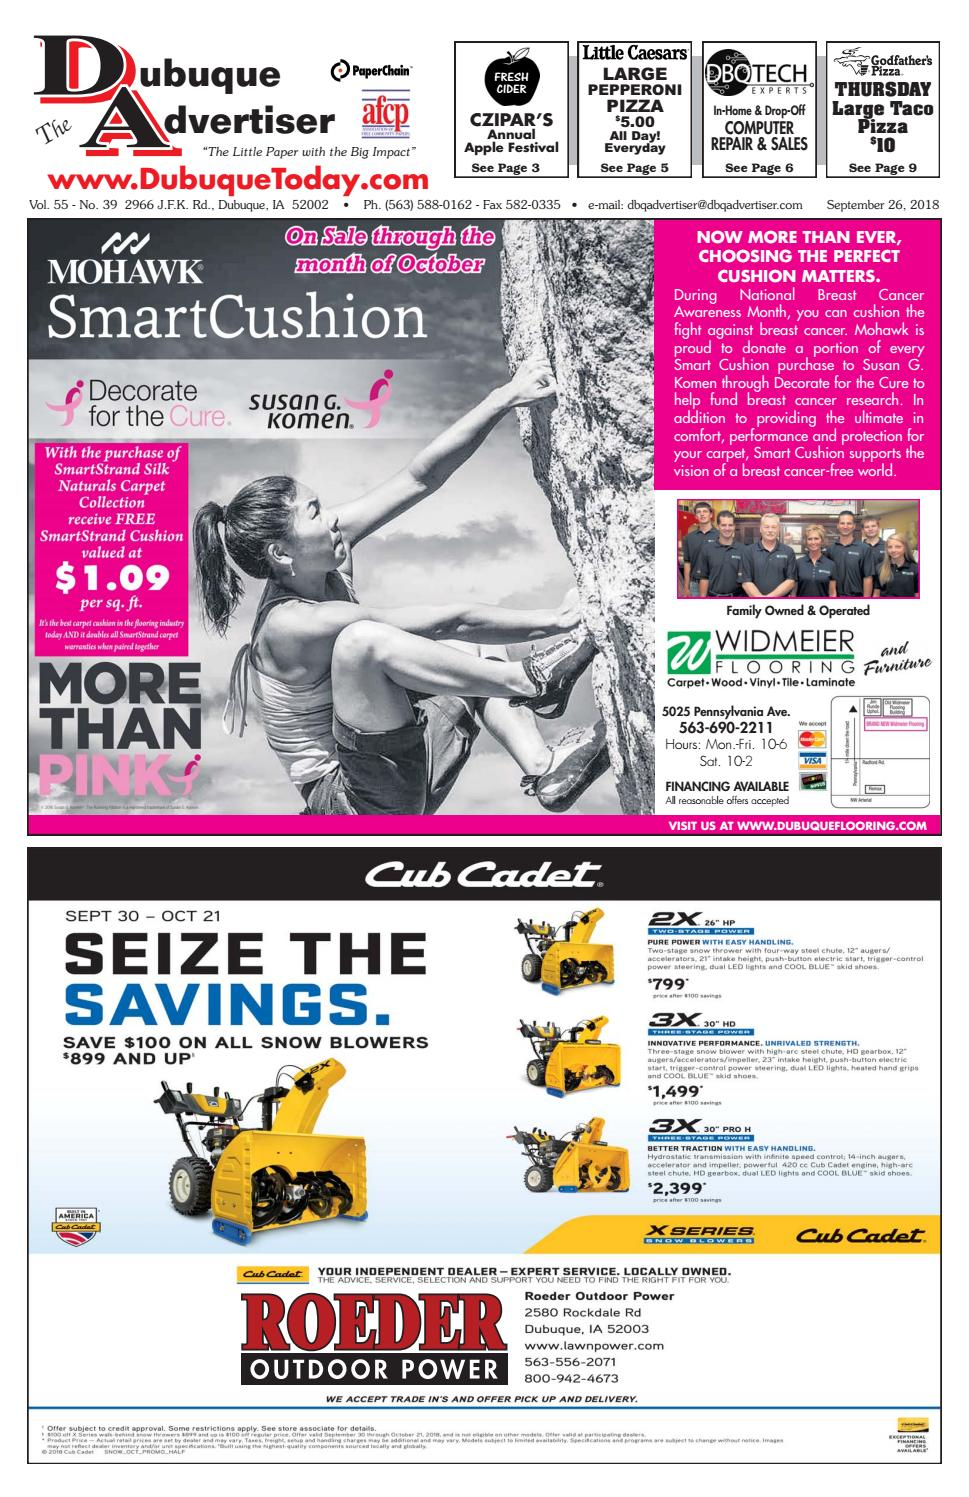 The Dubuque Advertiser September 26 2018 By Depot Your One Stop Trailer Shop 7 Blade Rv Type Plug Wiring Issuu